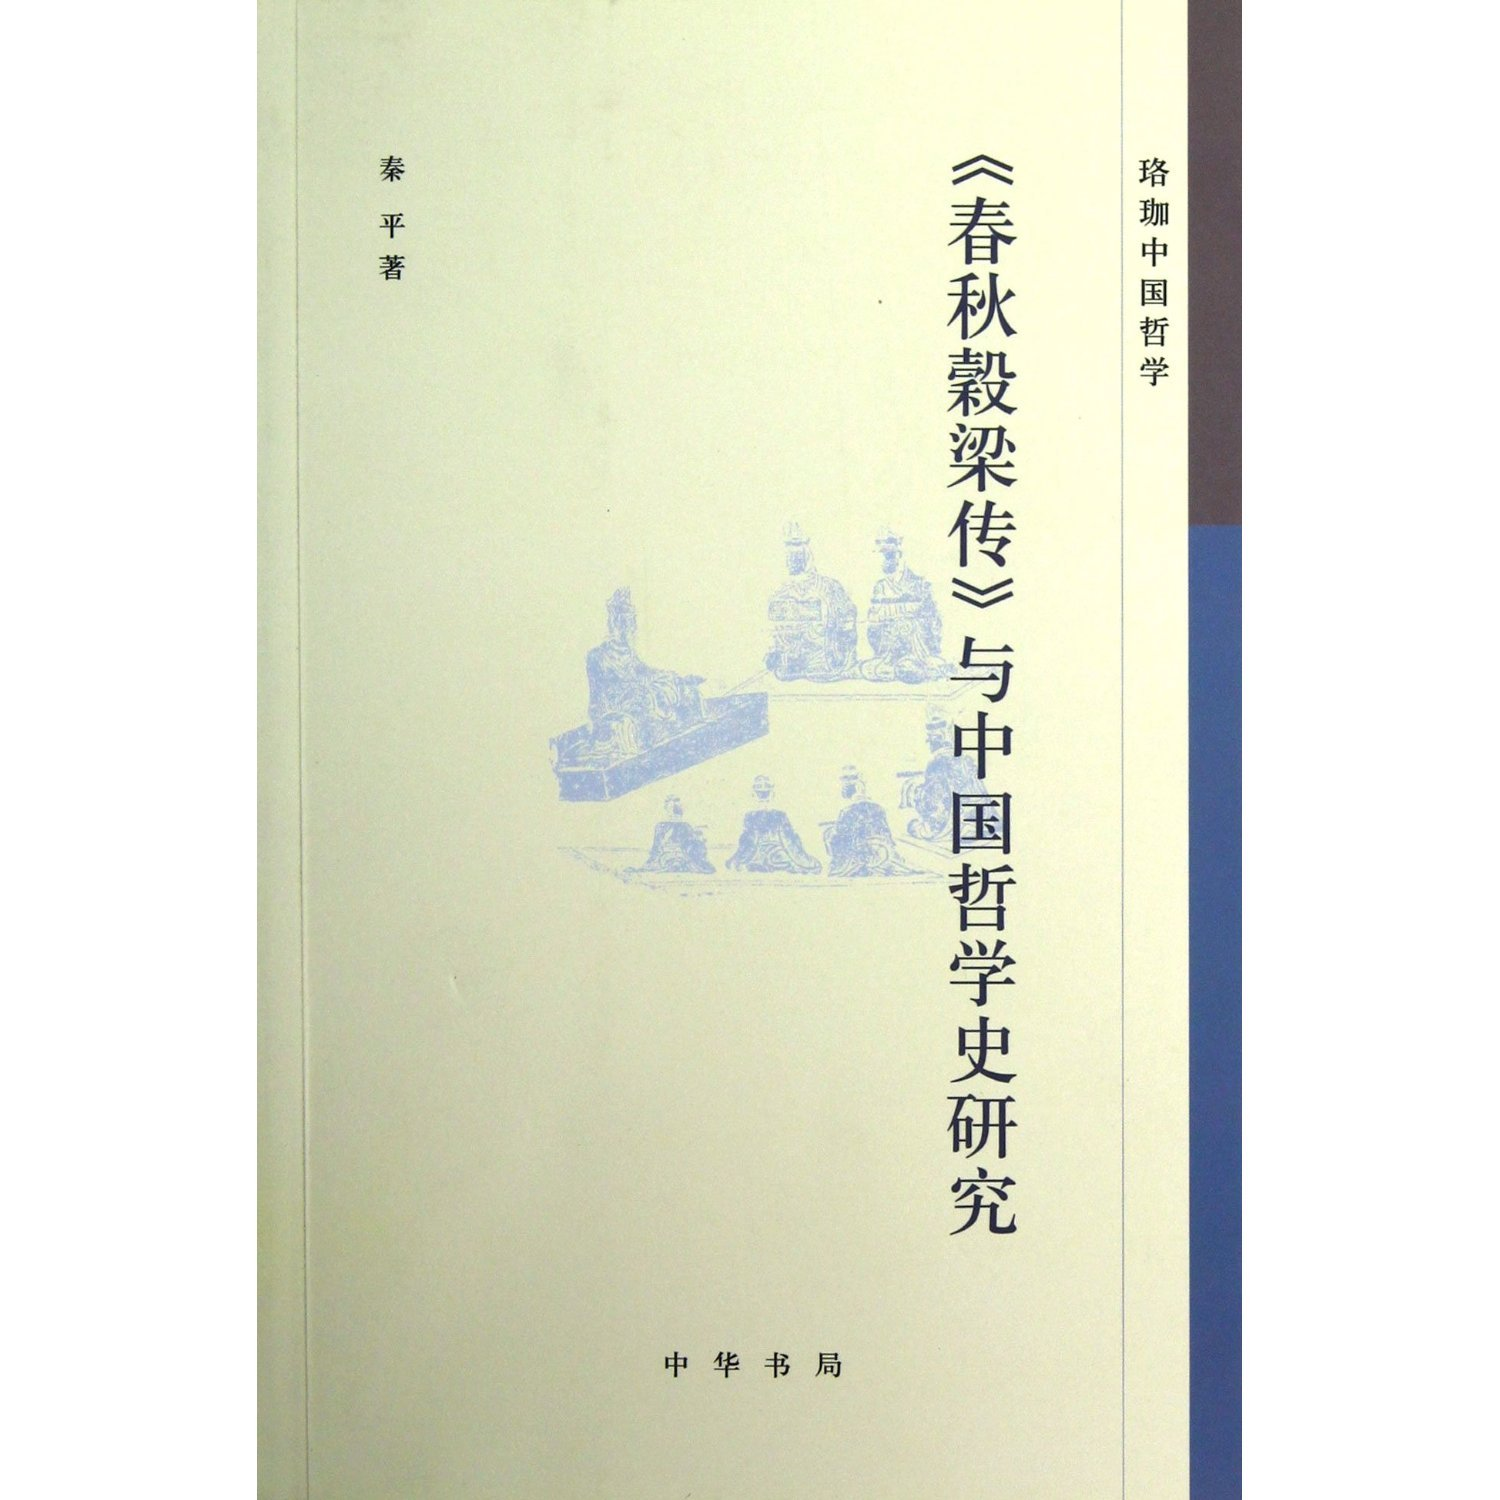 Guliangs Preach on the Spring and Autumn and  Chinas Philosophy History Study  ( Chinese philosophy  in Wuhan University) (Chinese Edition) pdf